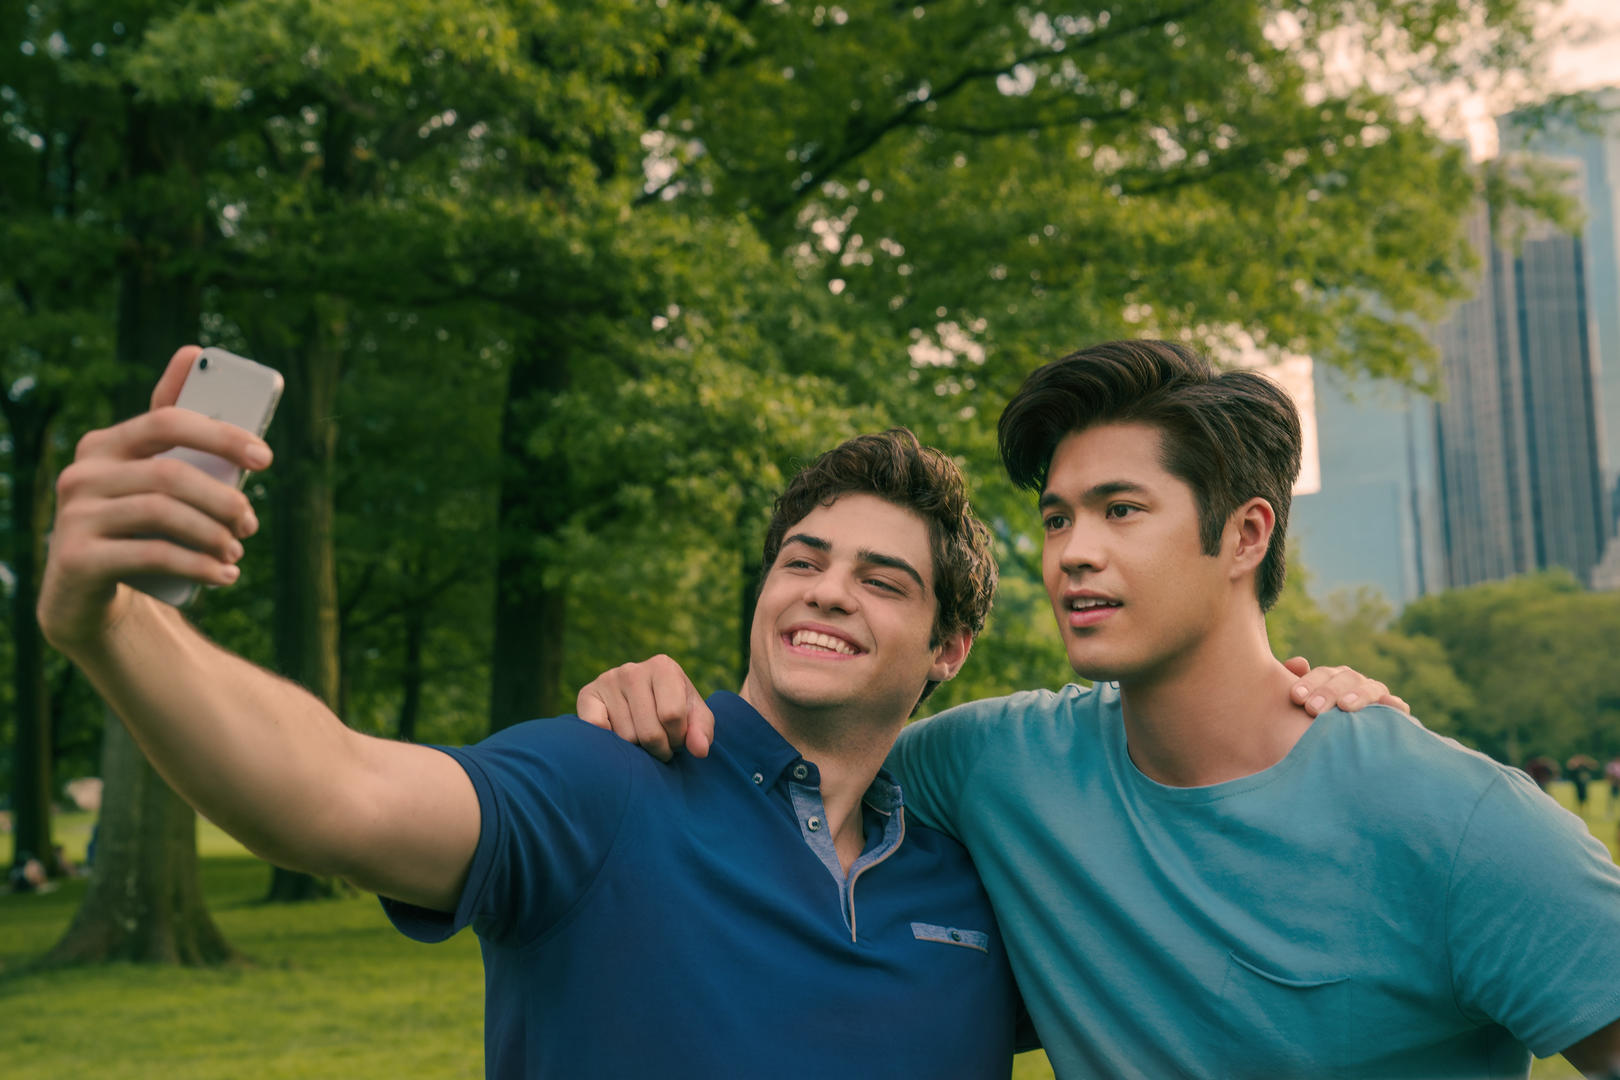 TO ALL THE BOYS IVE LOVED BEFORE 3. Noah Centineo as Peter Kavinsky, Ross Butler as Trevor, in TO ALL THE BOYS IVE LOVED BEFORE 3. Cr. Sarah Shatz / Netflix © 2020